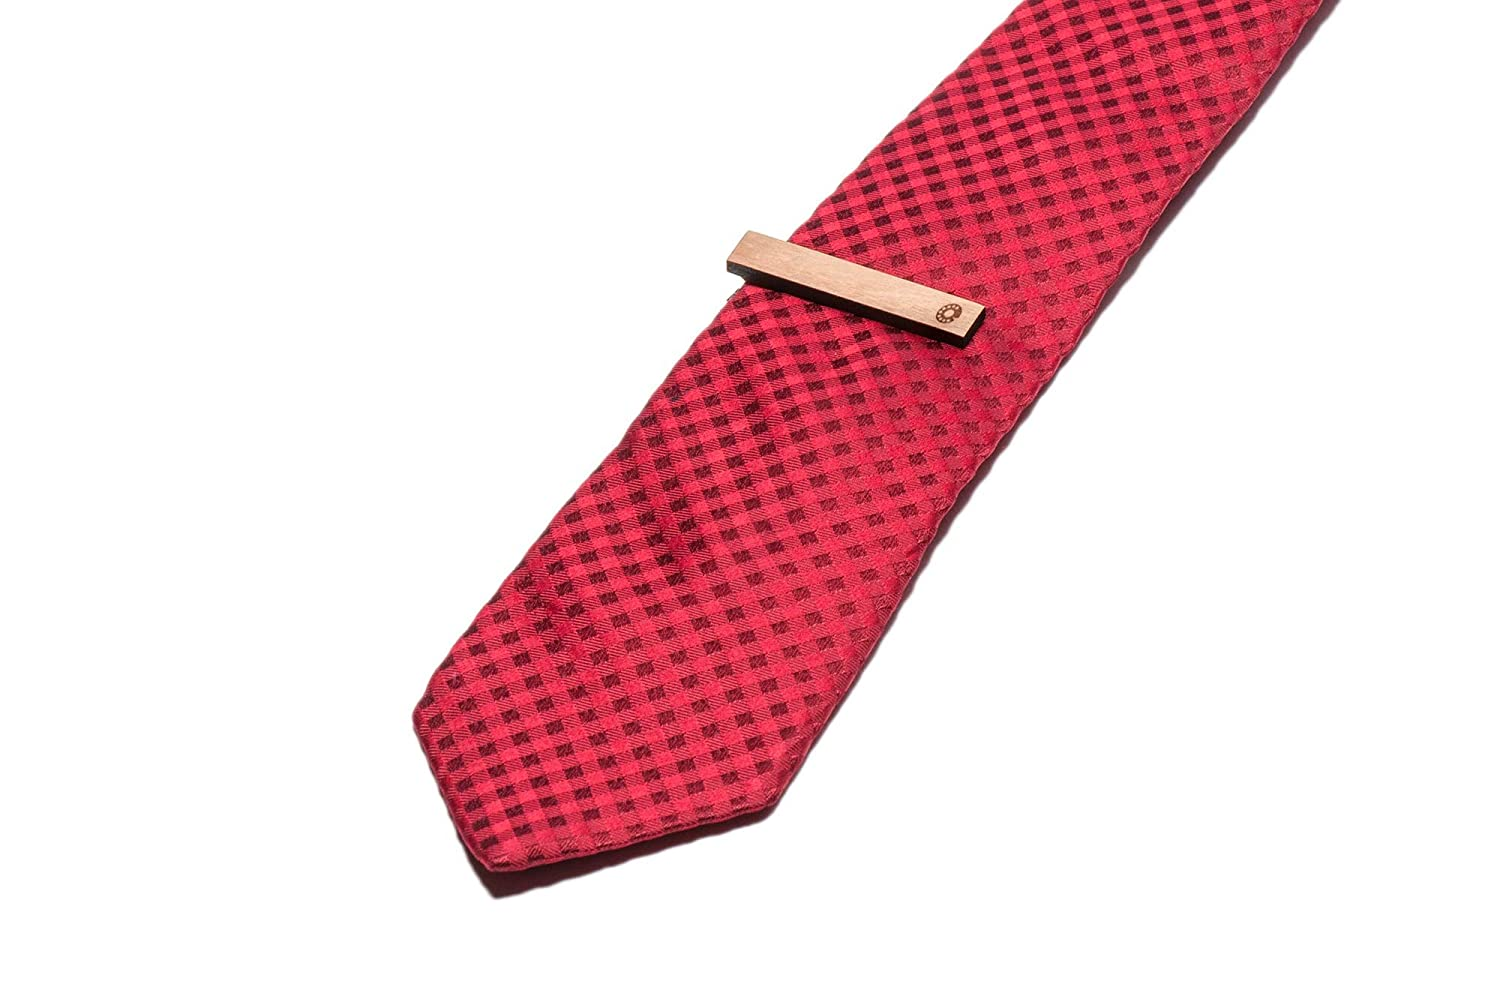 Cherry Wood Tie Bar Engraved in The USA Wooden Accessories Company Wooden Tie Clips with Laser Engraved Dialer Design